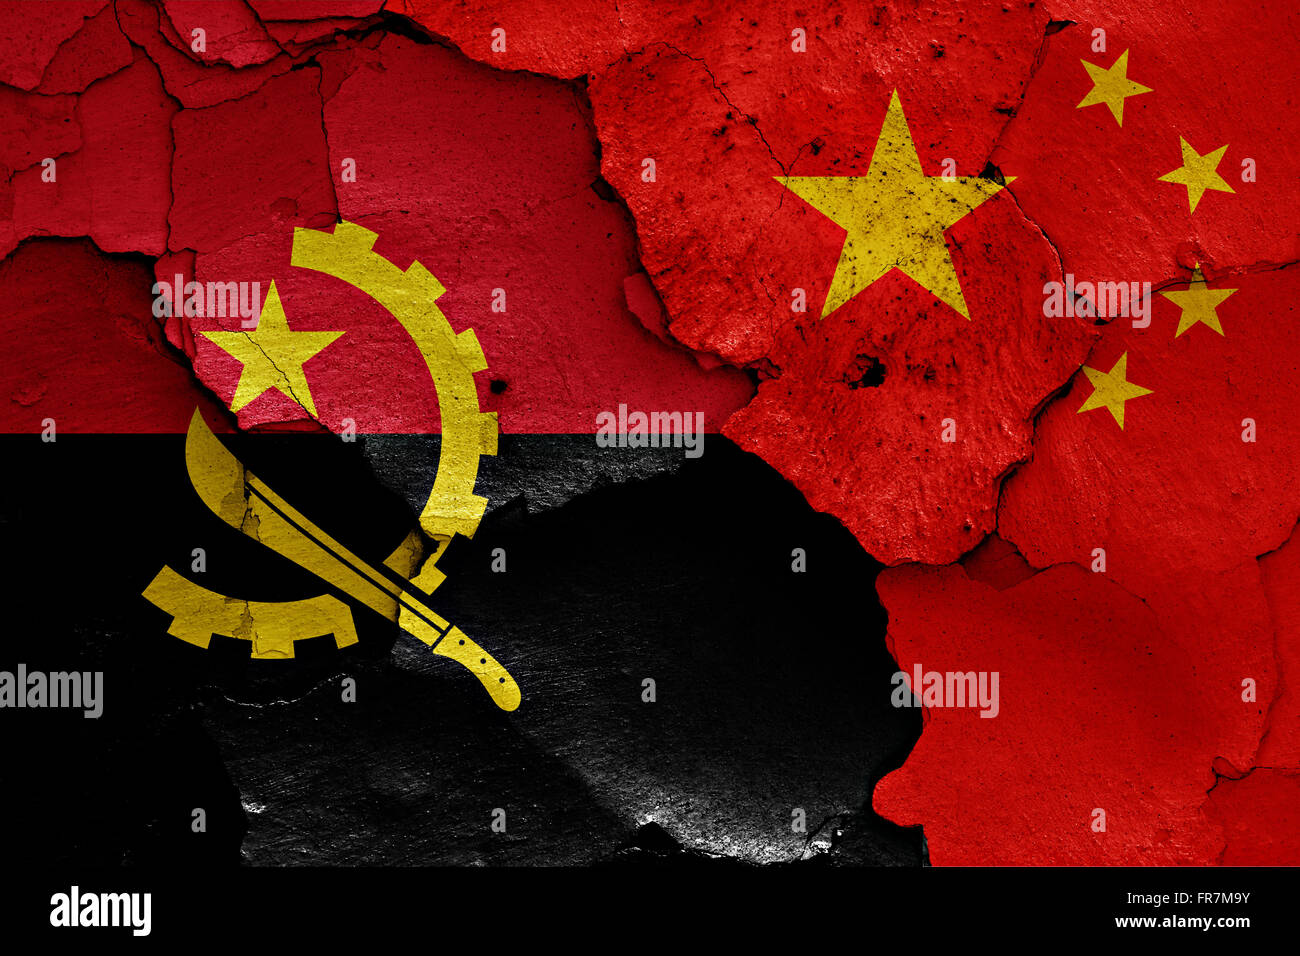 flags of Angola and China painted on cracked wall - Stock Image